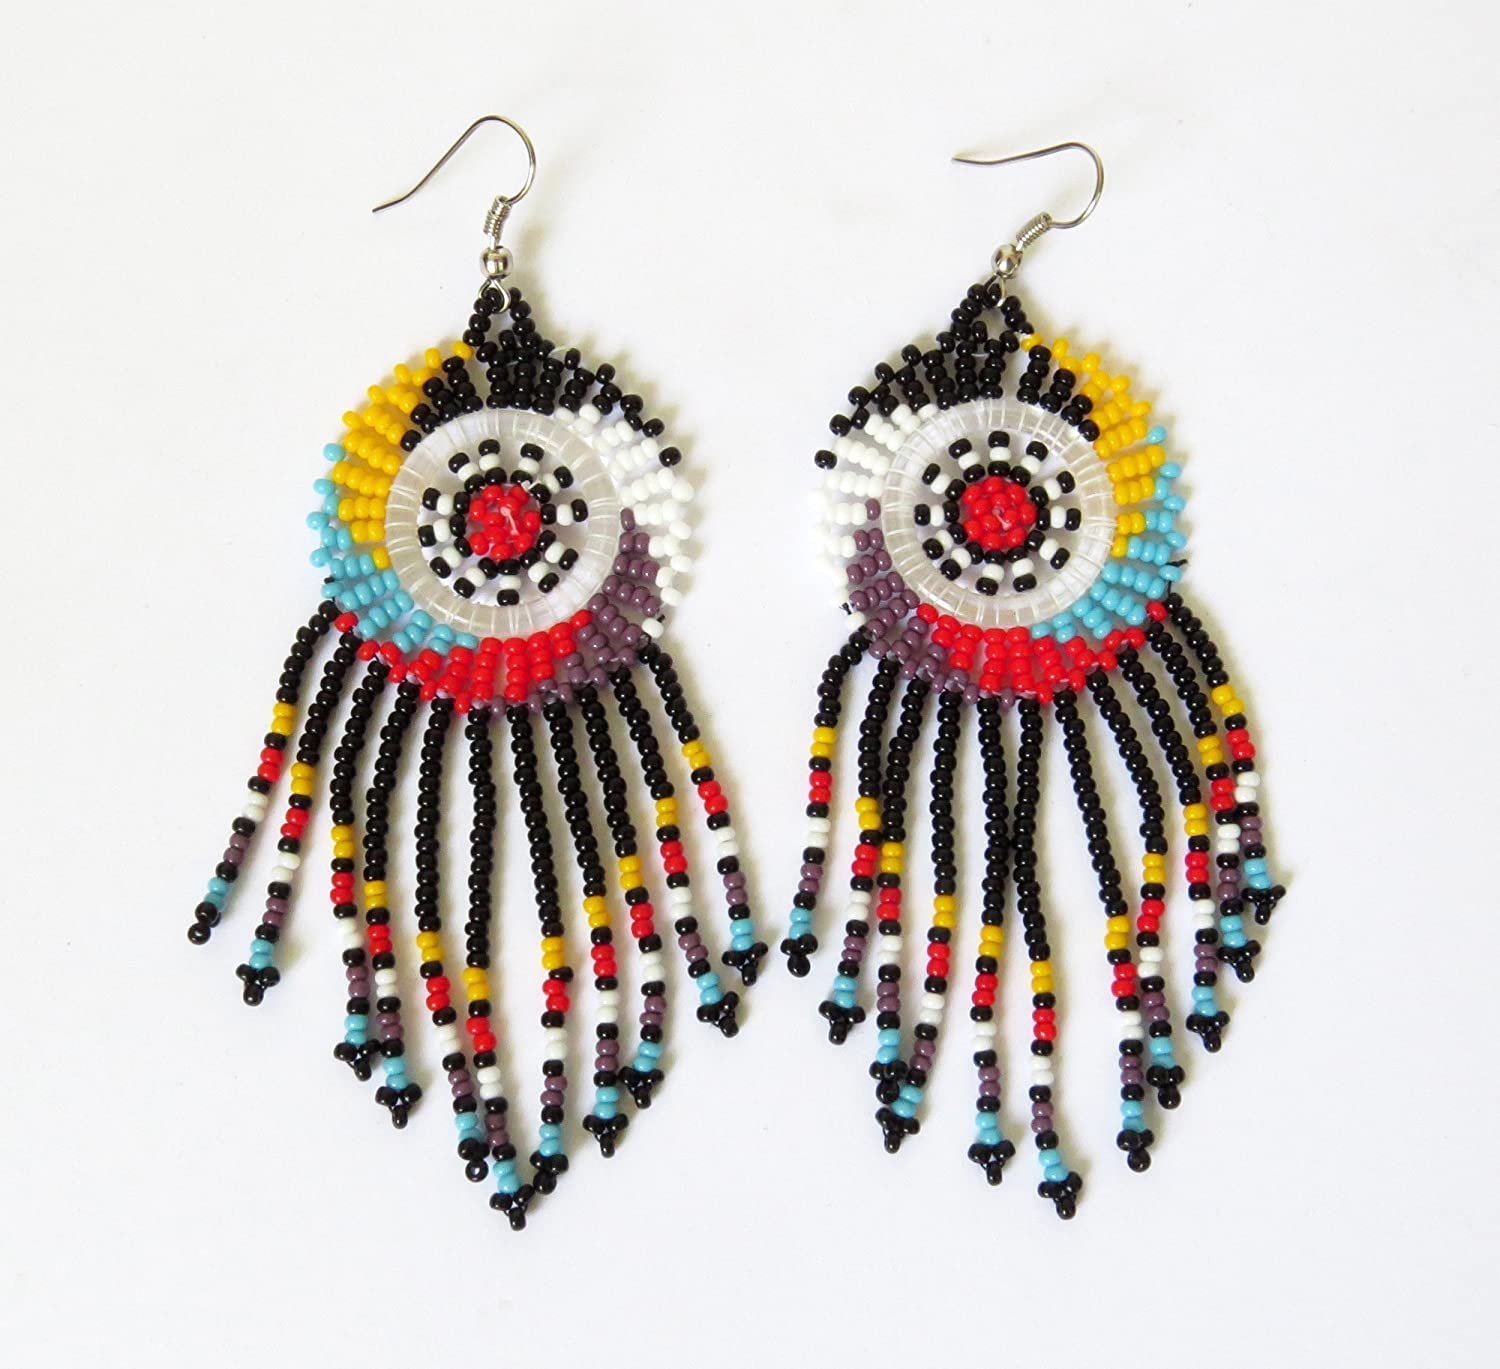 African Zulu beaded earrings - Dreamcatchers (small) - Black and multicolour - Gift for her